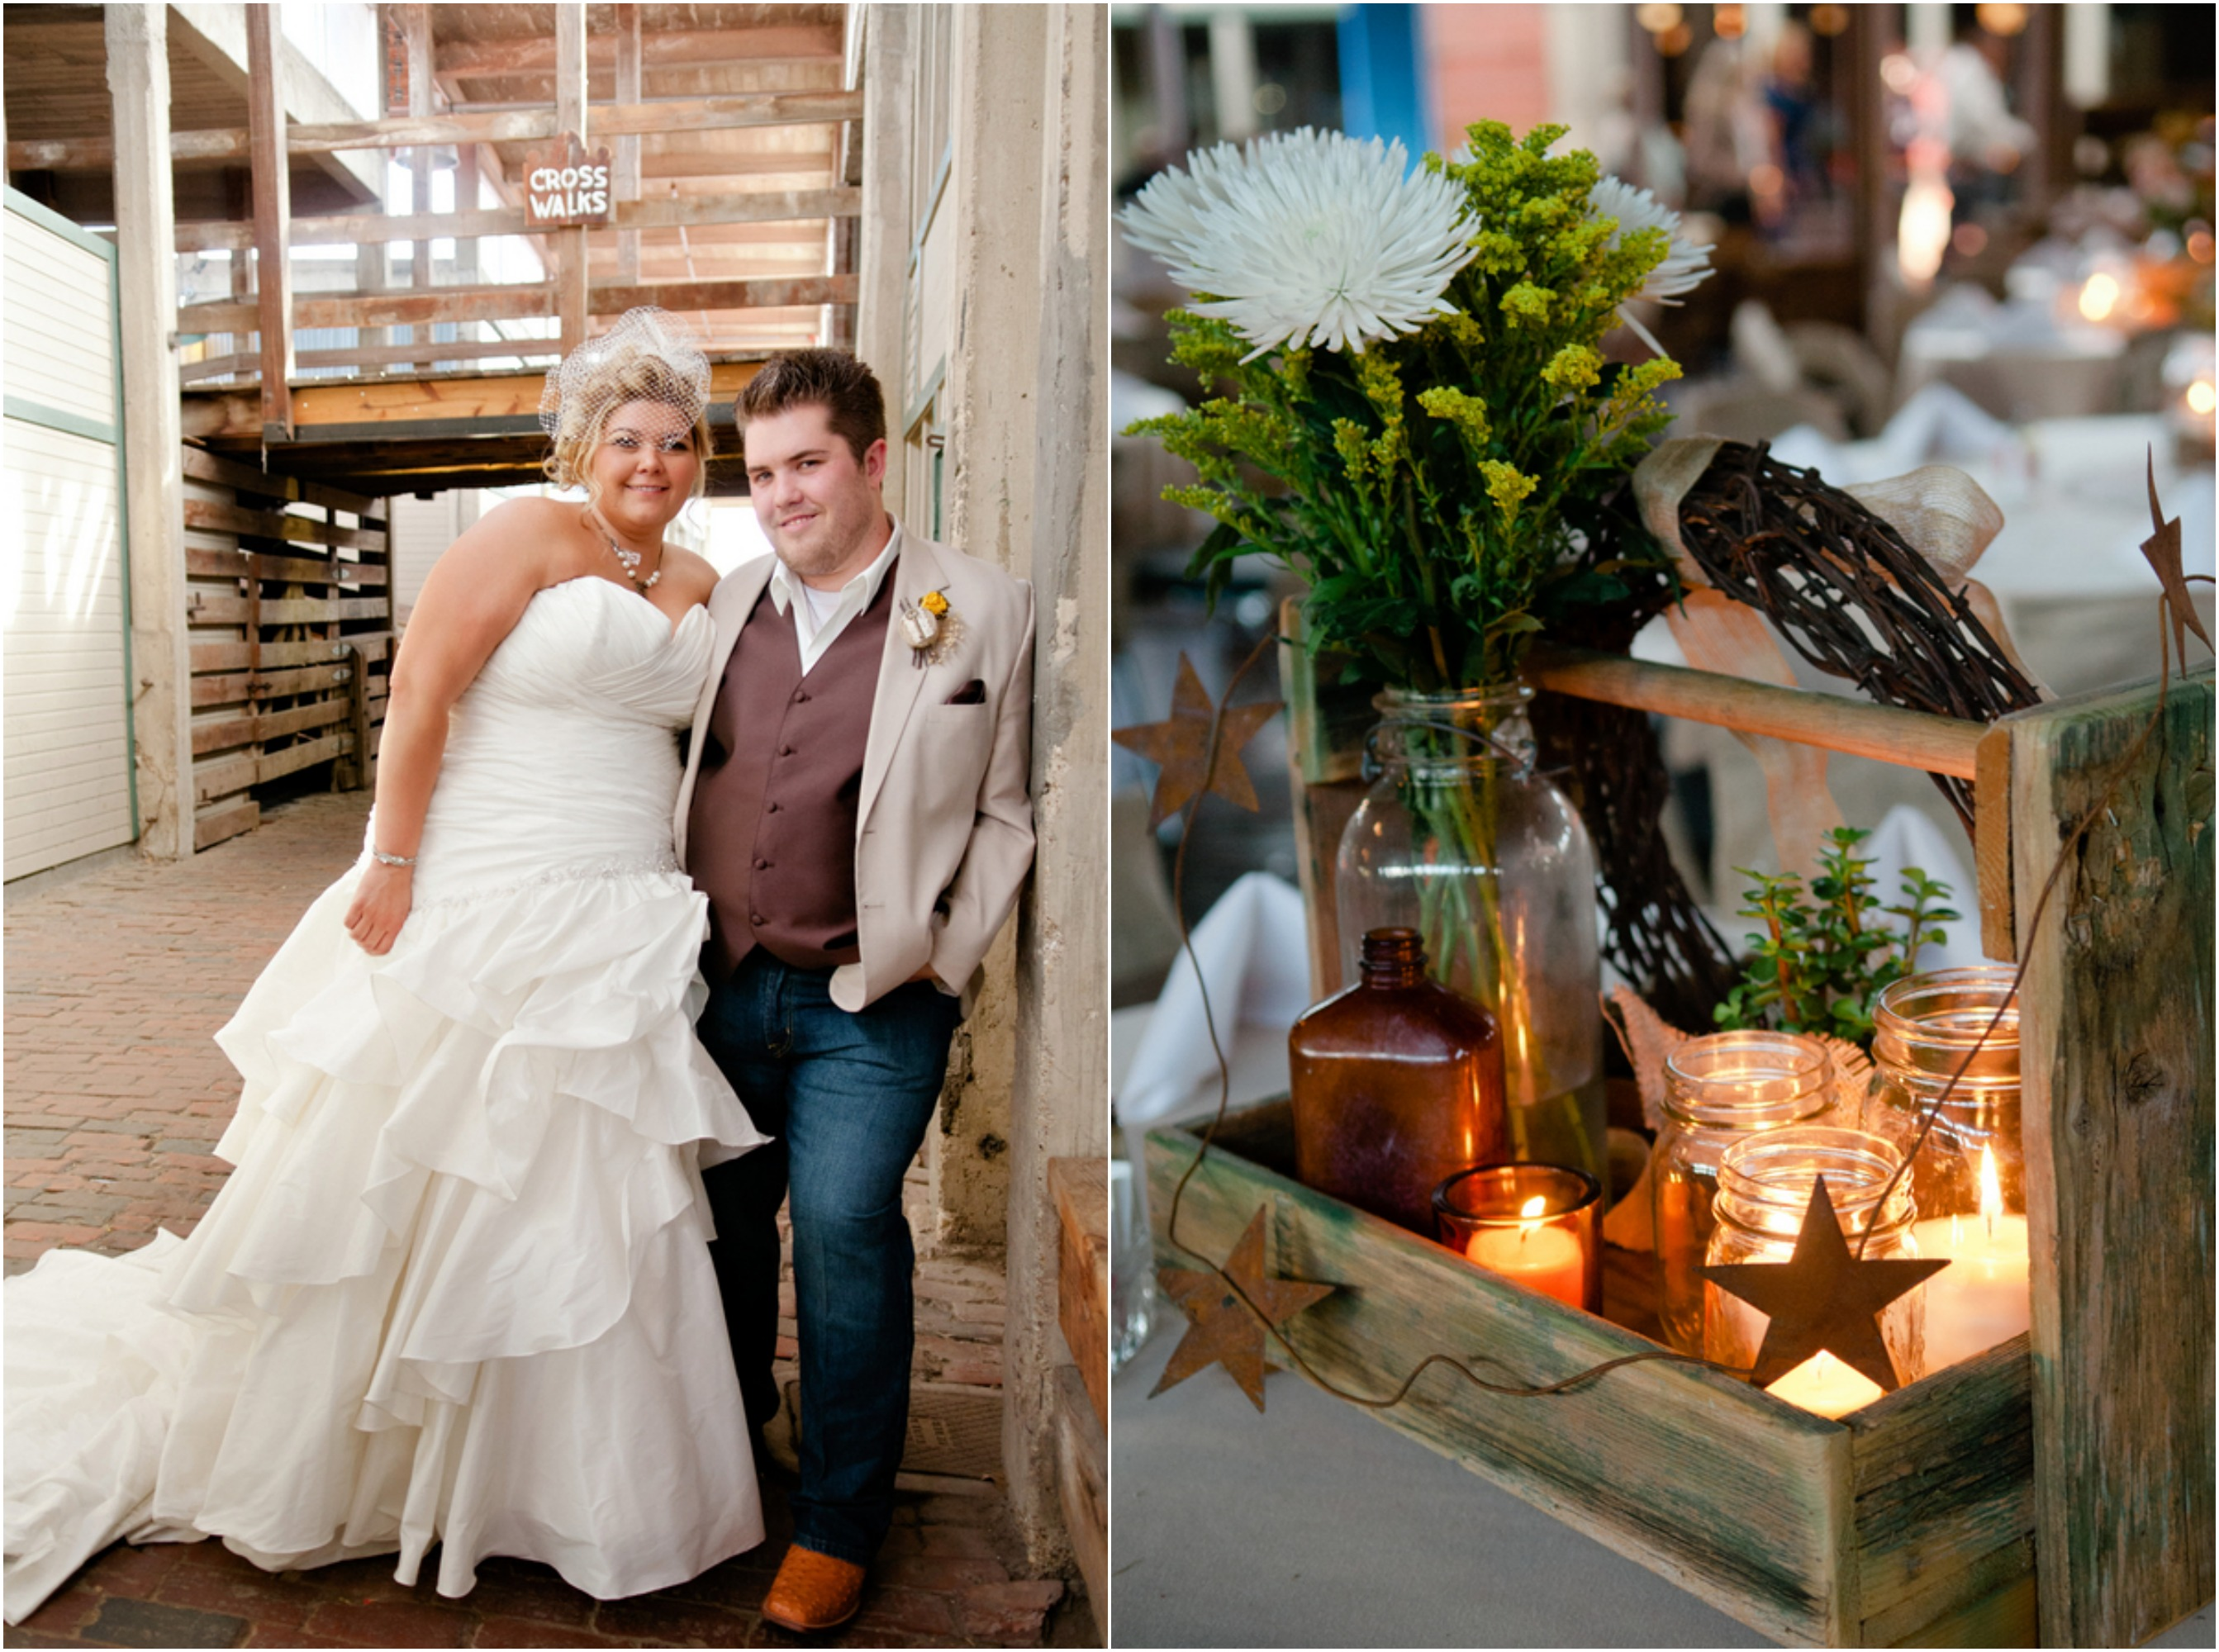 Texas Country Wedding With Vintage Decorations - Rustic ... - photo#6